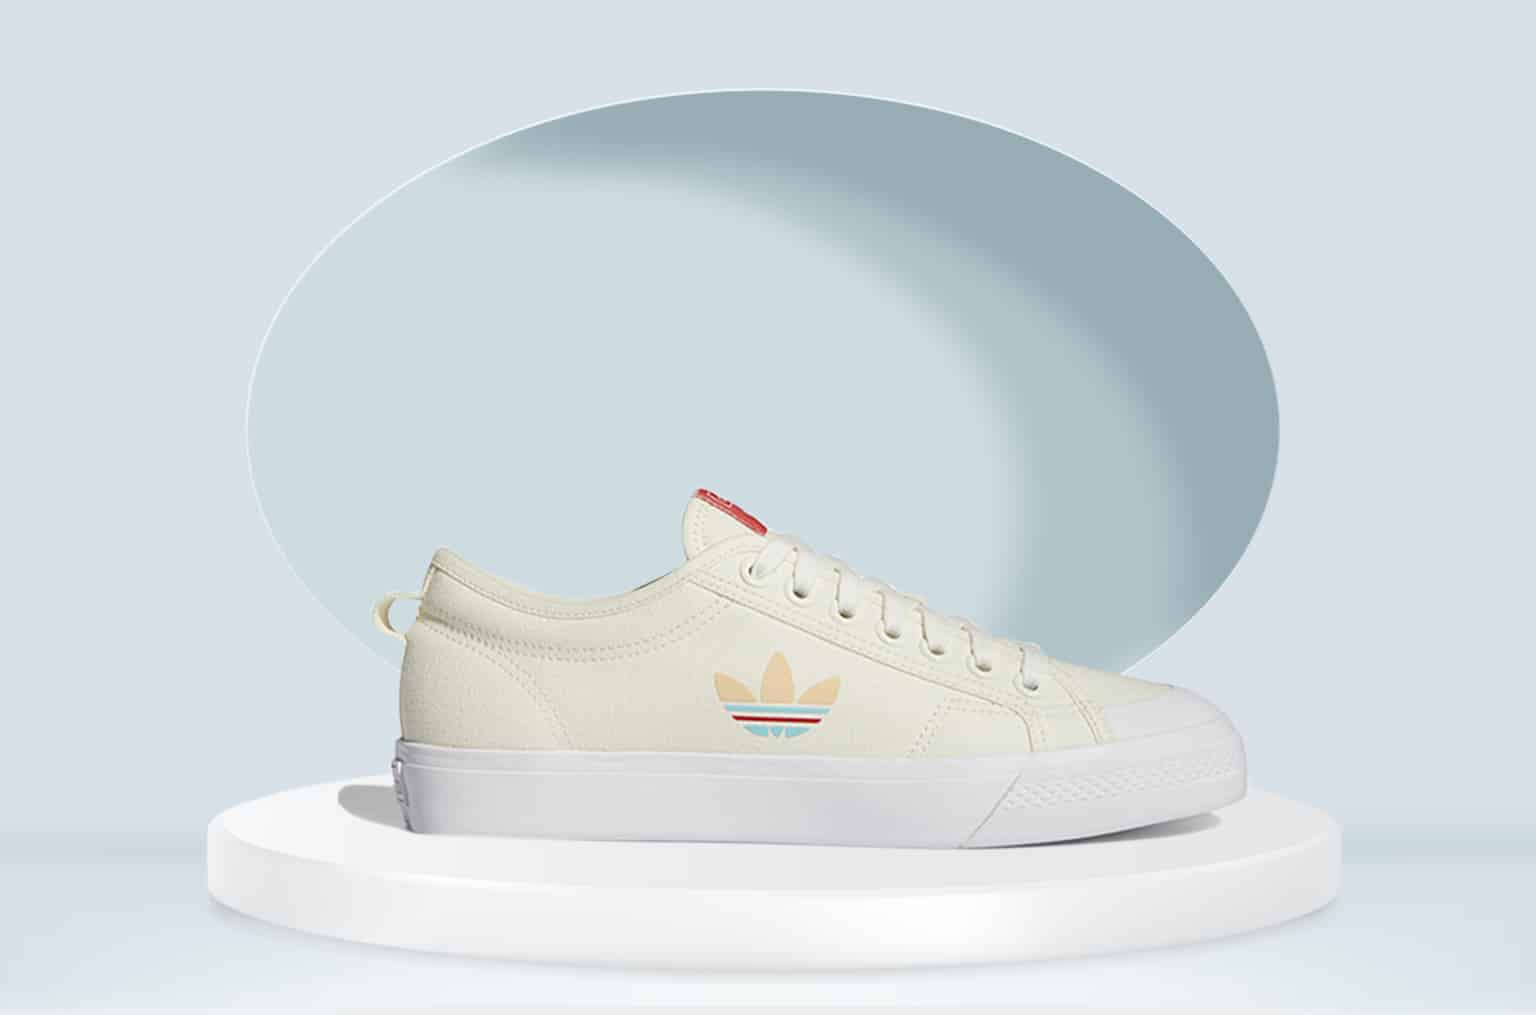 ADIDAS N IZZA TREFOIL SHOES OFF WHITE